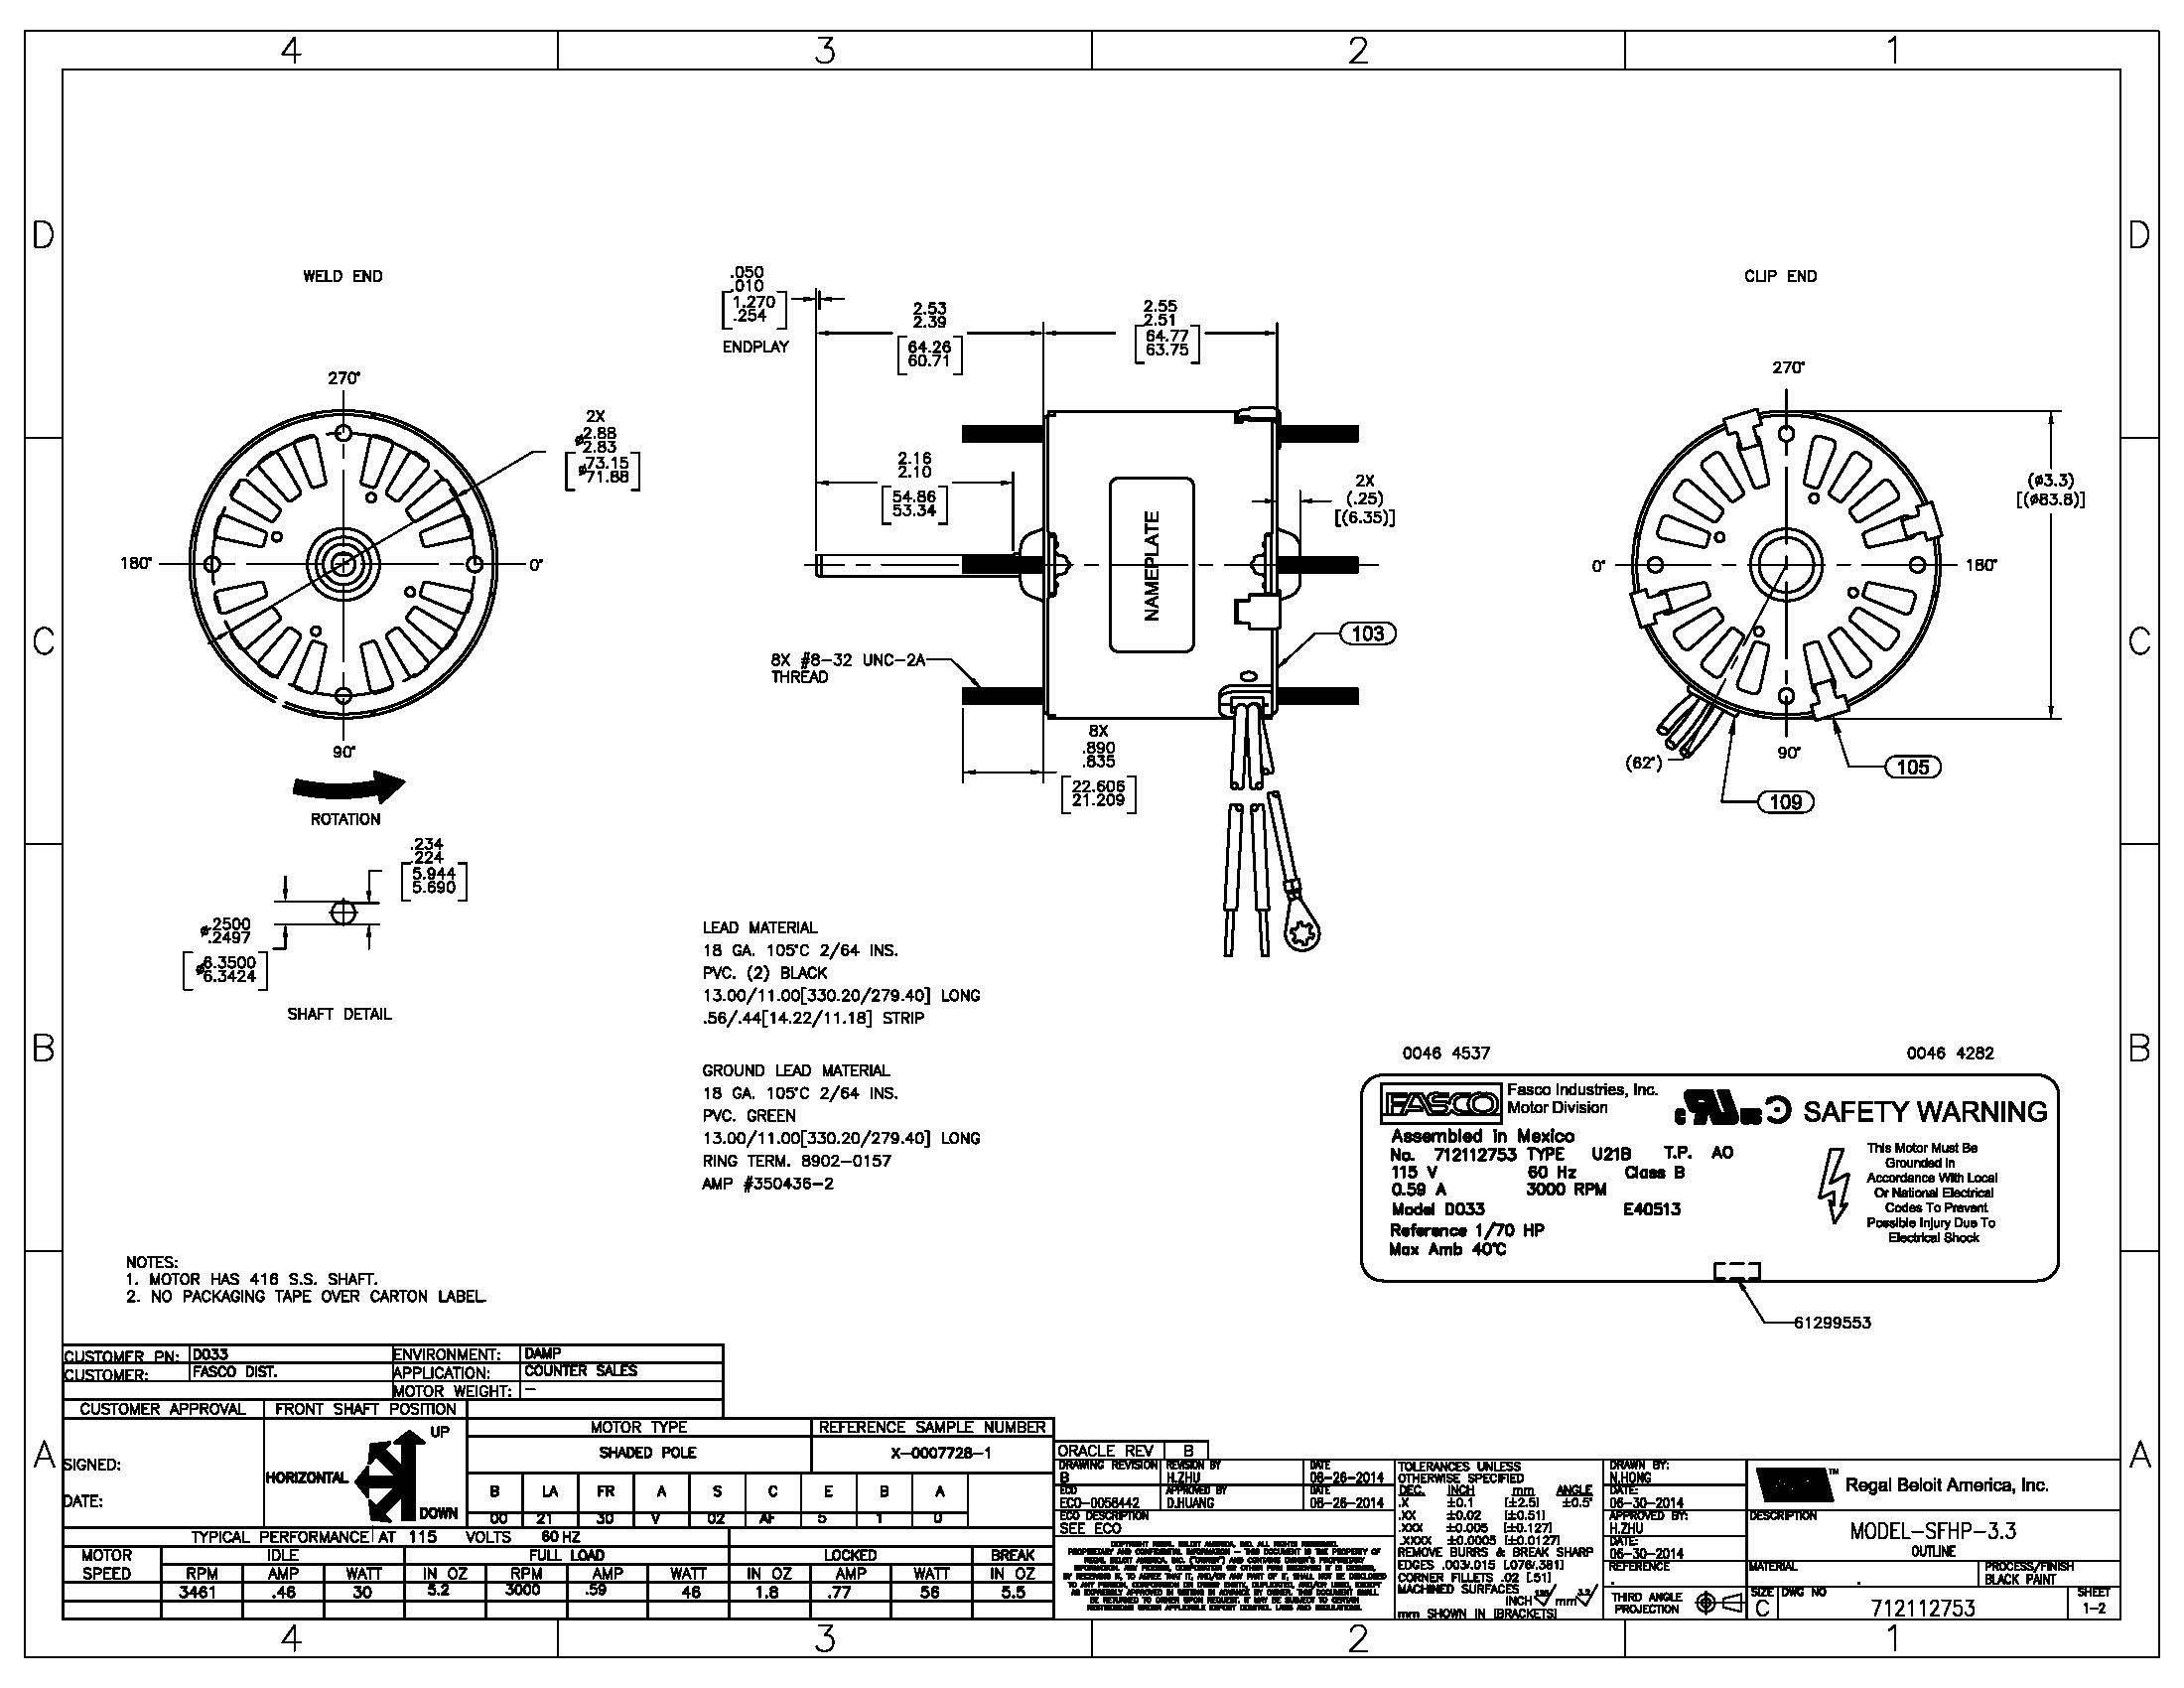 Diagram Auto Mobile Condenser Fan Motor Wiring Diagram Full Version Hd Quality Wiring Diagram Diagraminc Lineakebap It